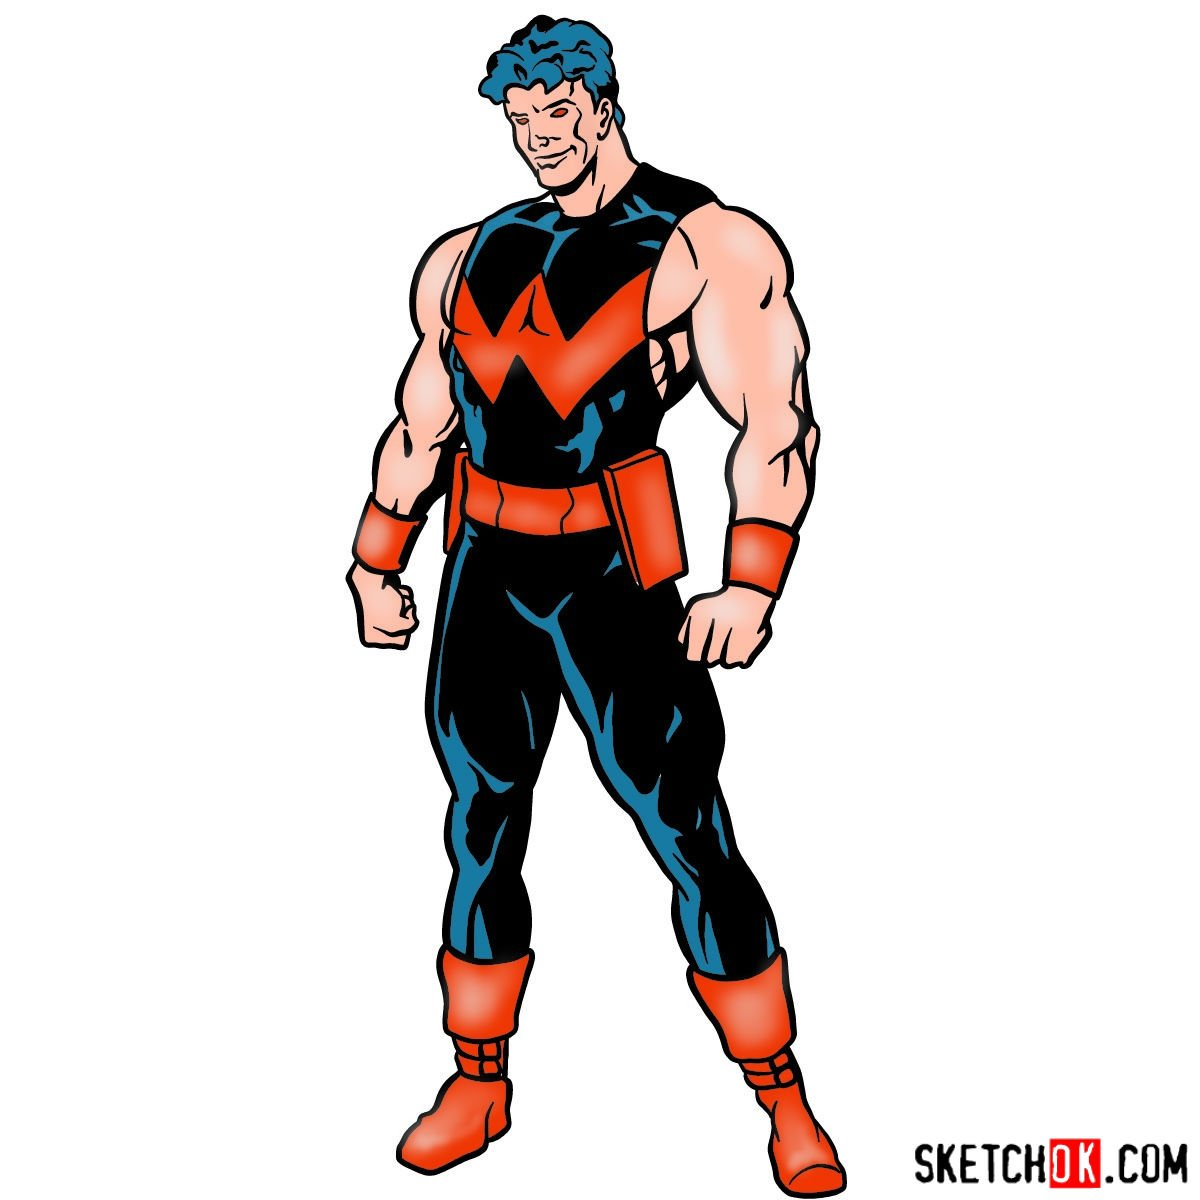 How to draw Marvel's Wonder Man